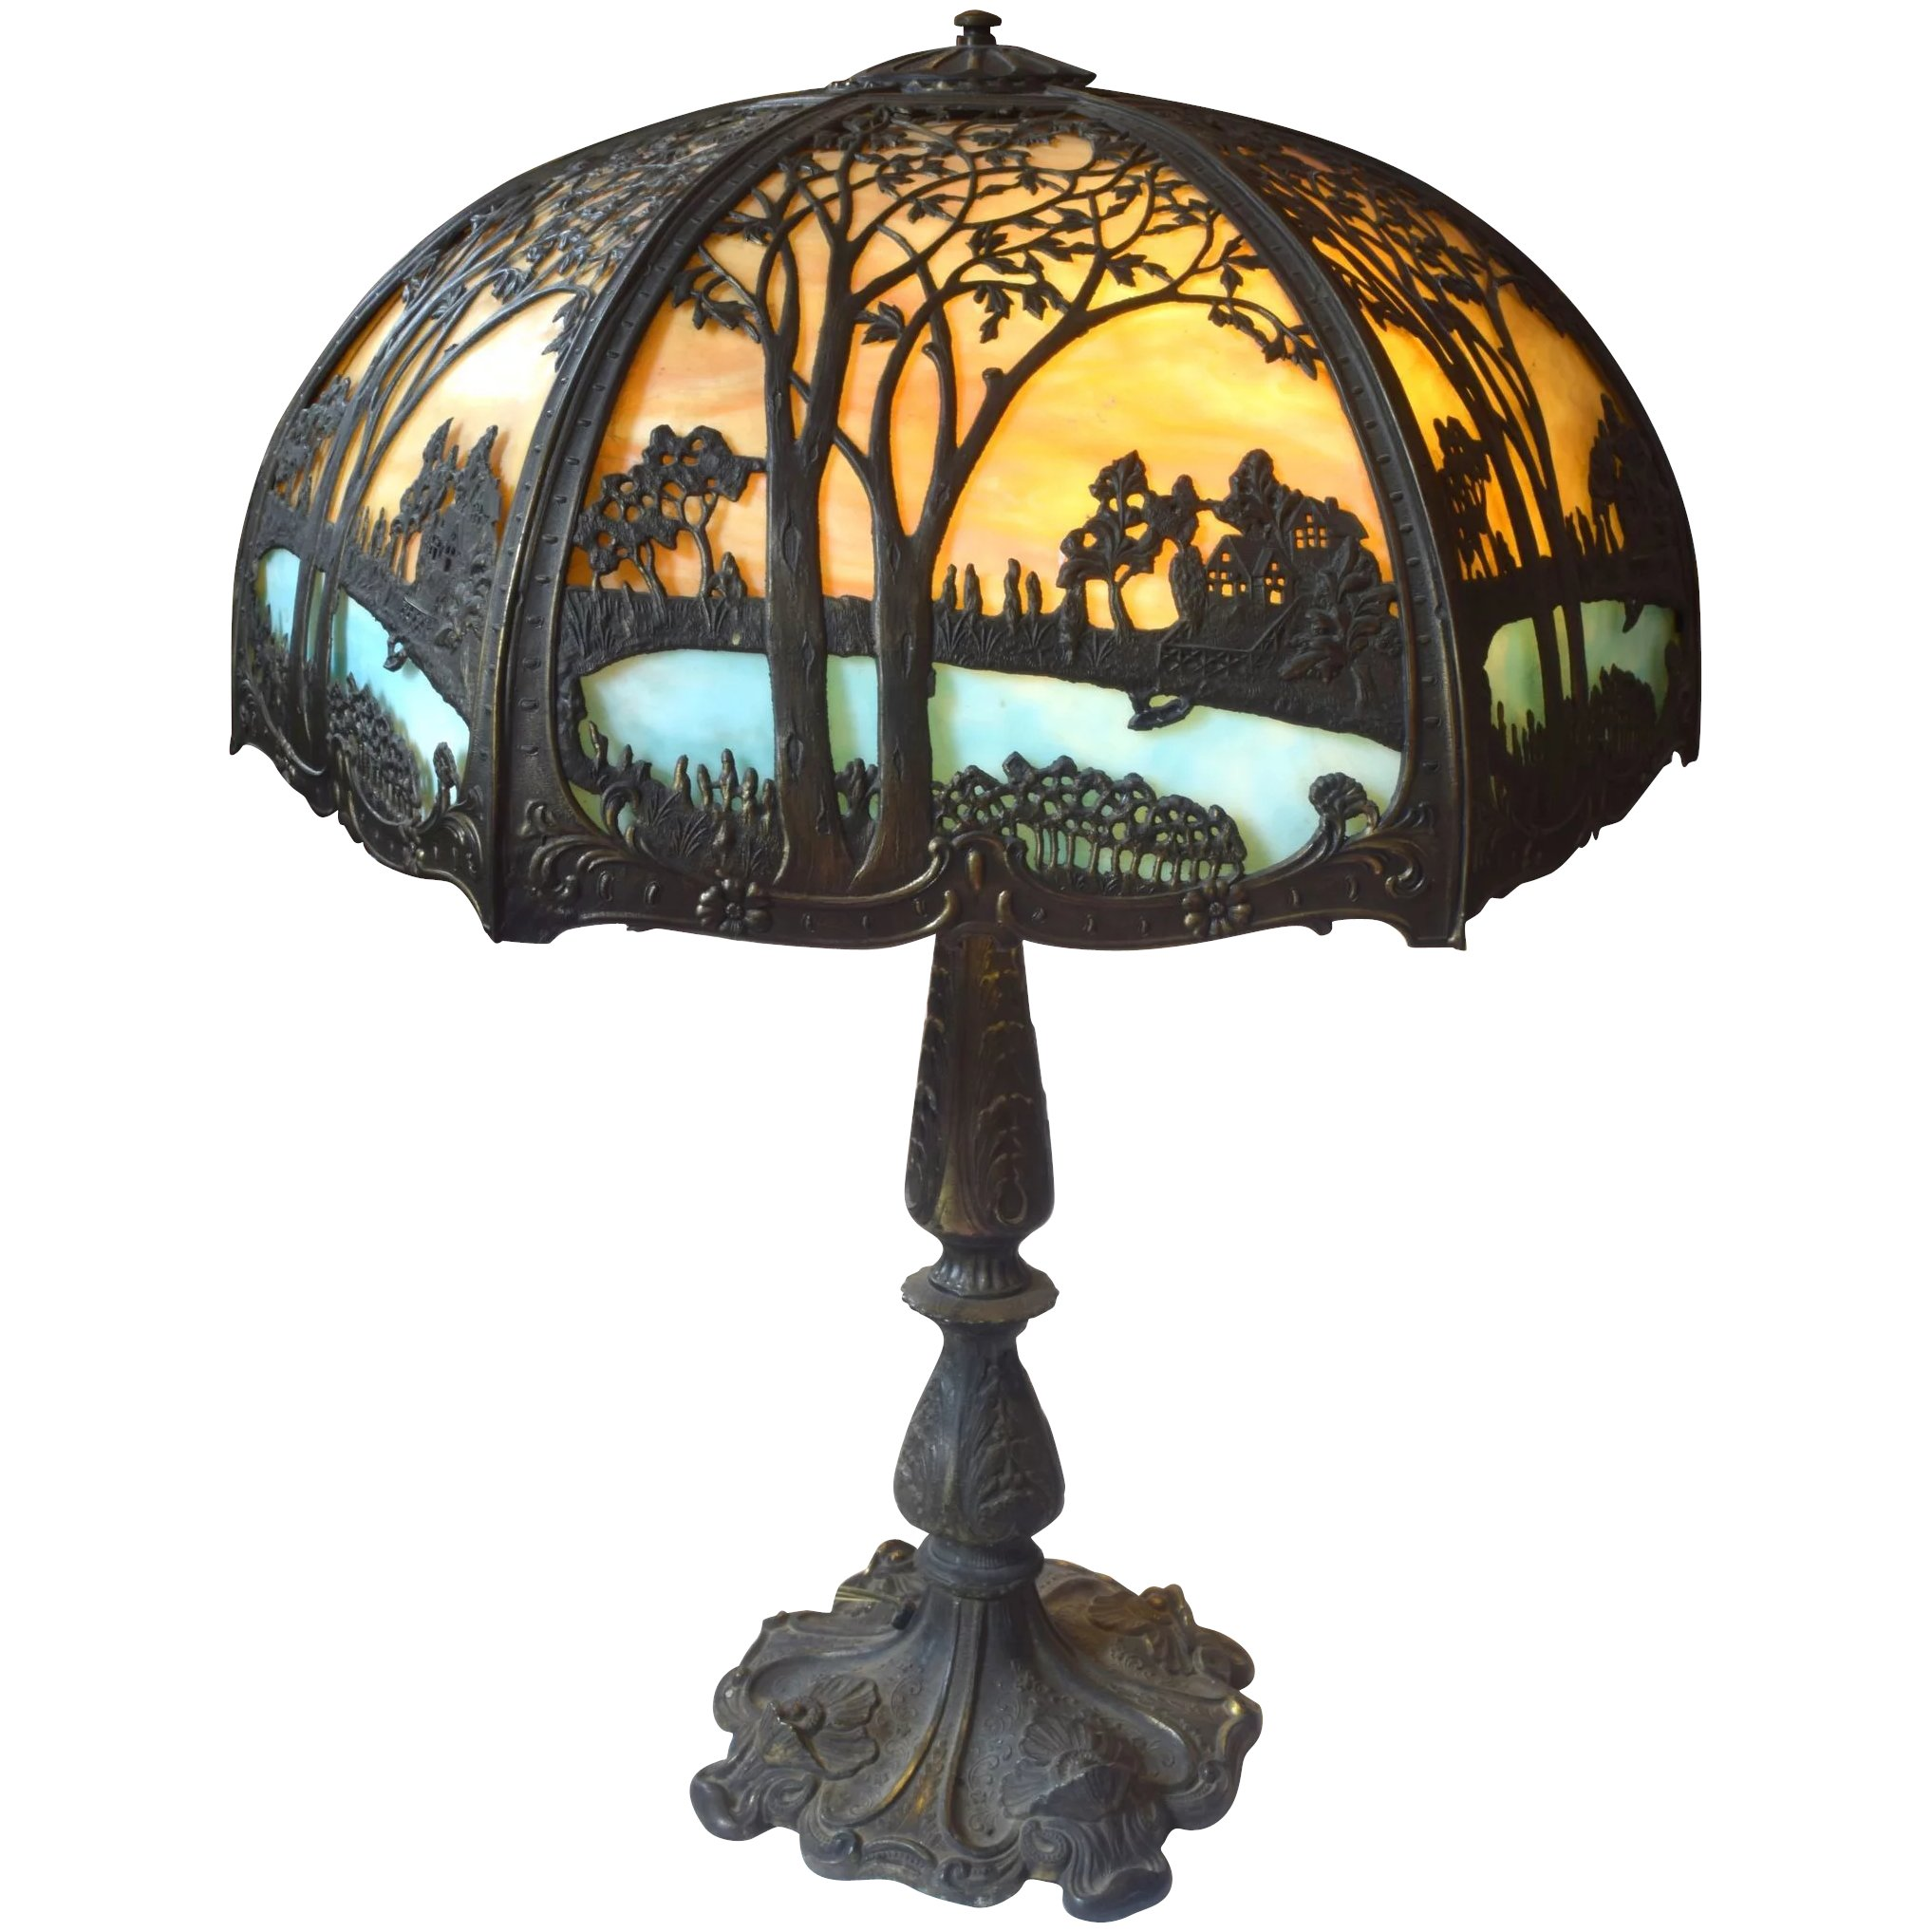 glass for en stained tiffany s lamps lamp lr important auctions sotheby sale